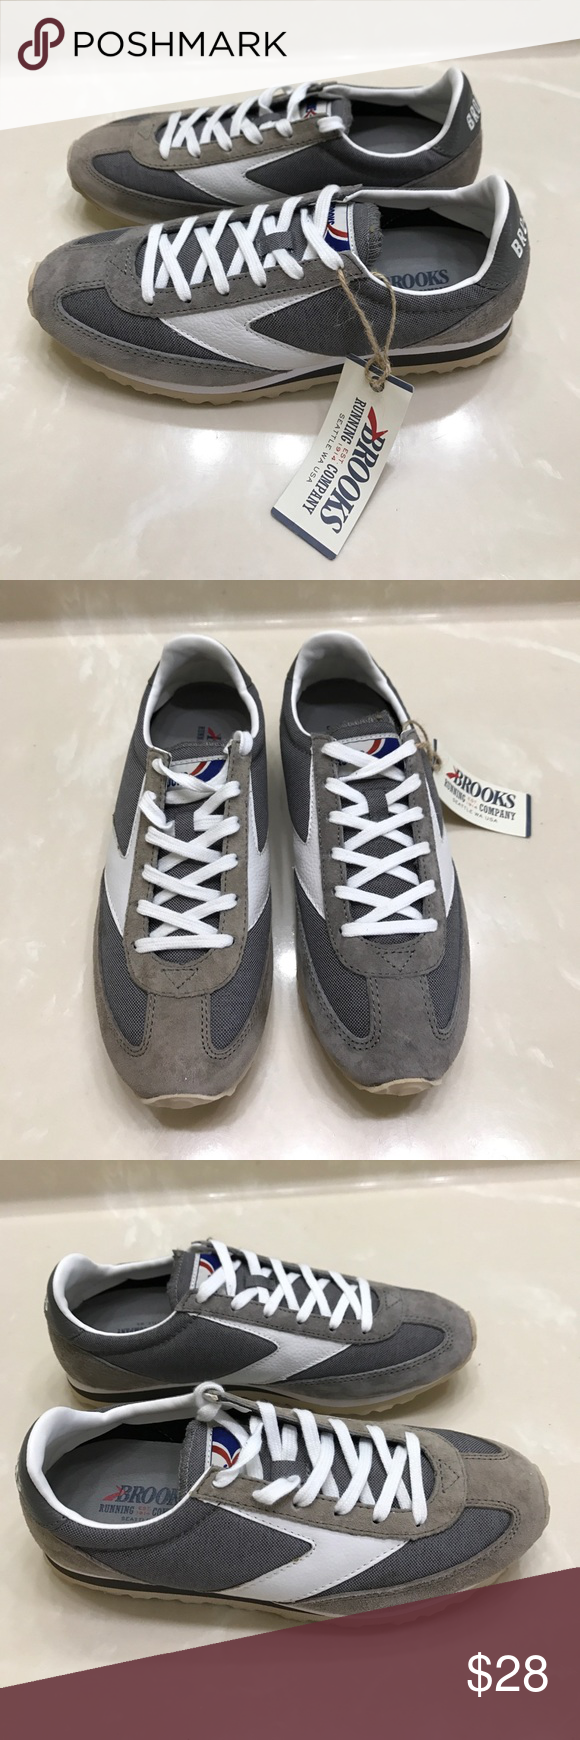 4e0c32f95c7 New defect Brooks running shoes sneakers sz 7 New with defect Brooks  running shoes sneakers tennis shoes sz 7 one shoe was a display model and  suede is ...